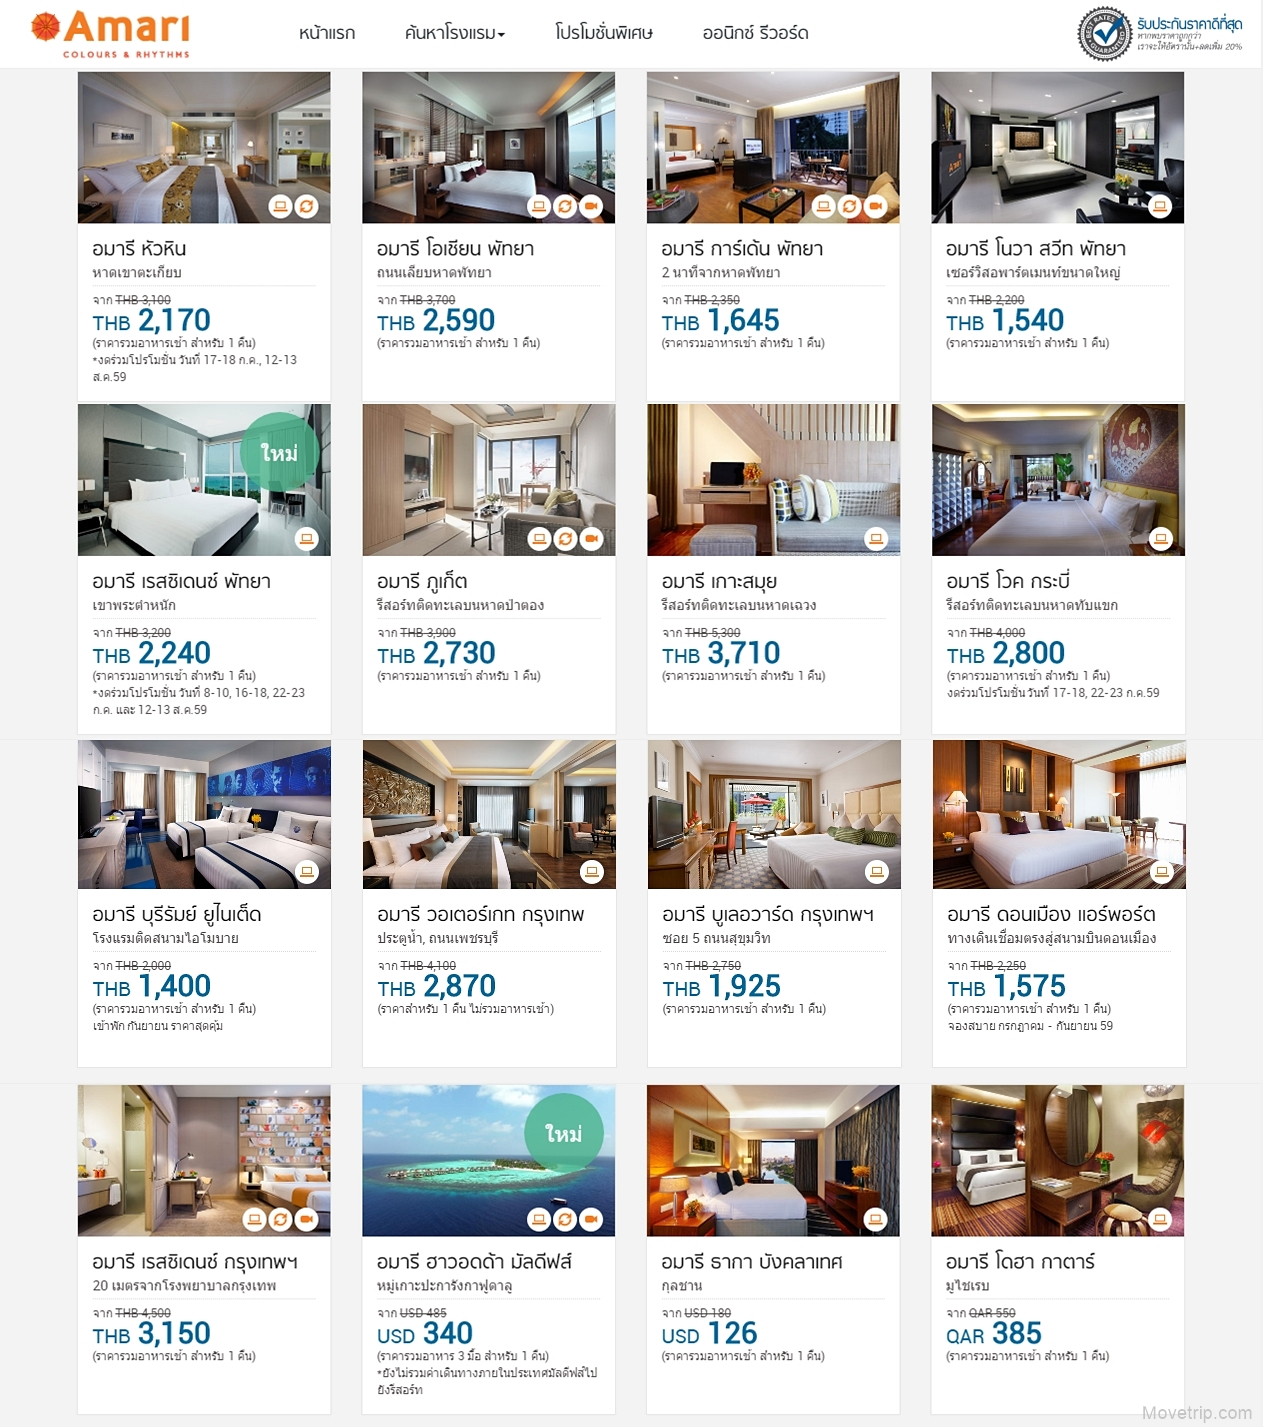 amari-hotels-promotion-code-2016-july-Wow30Pctoff